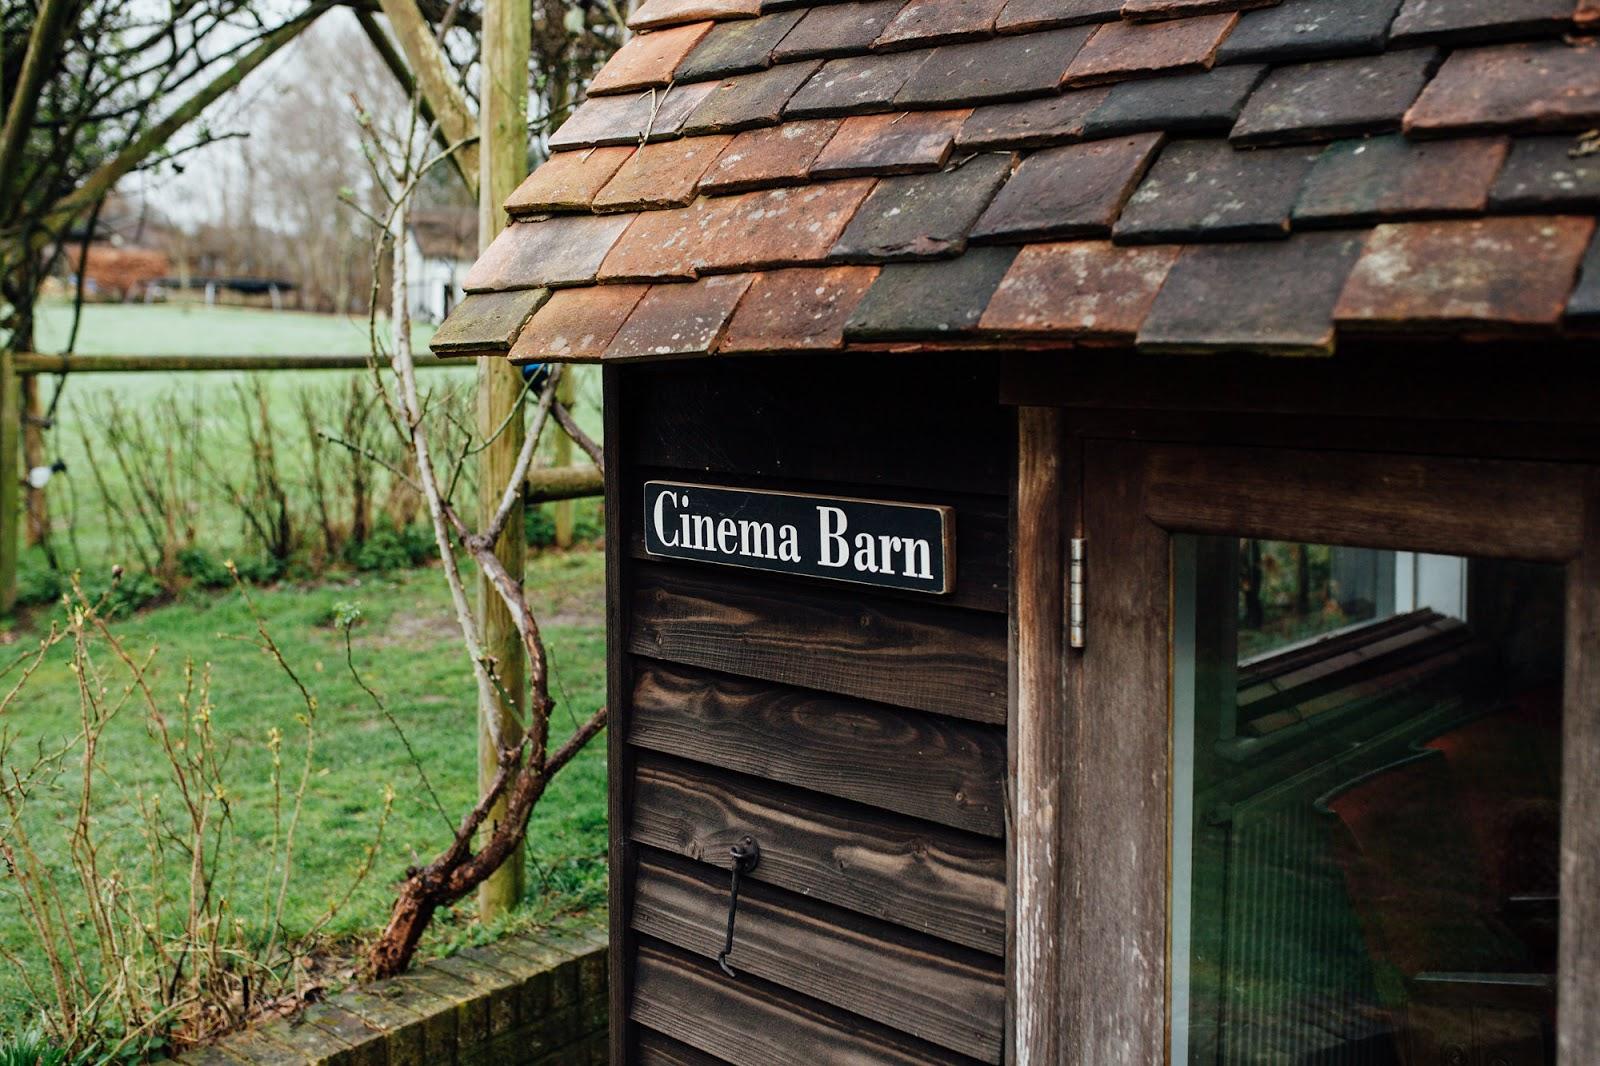 photograph of Fair Oak Farm taken by Natalie Evans – www.natalieevans-photography.com